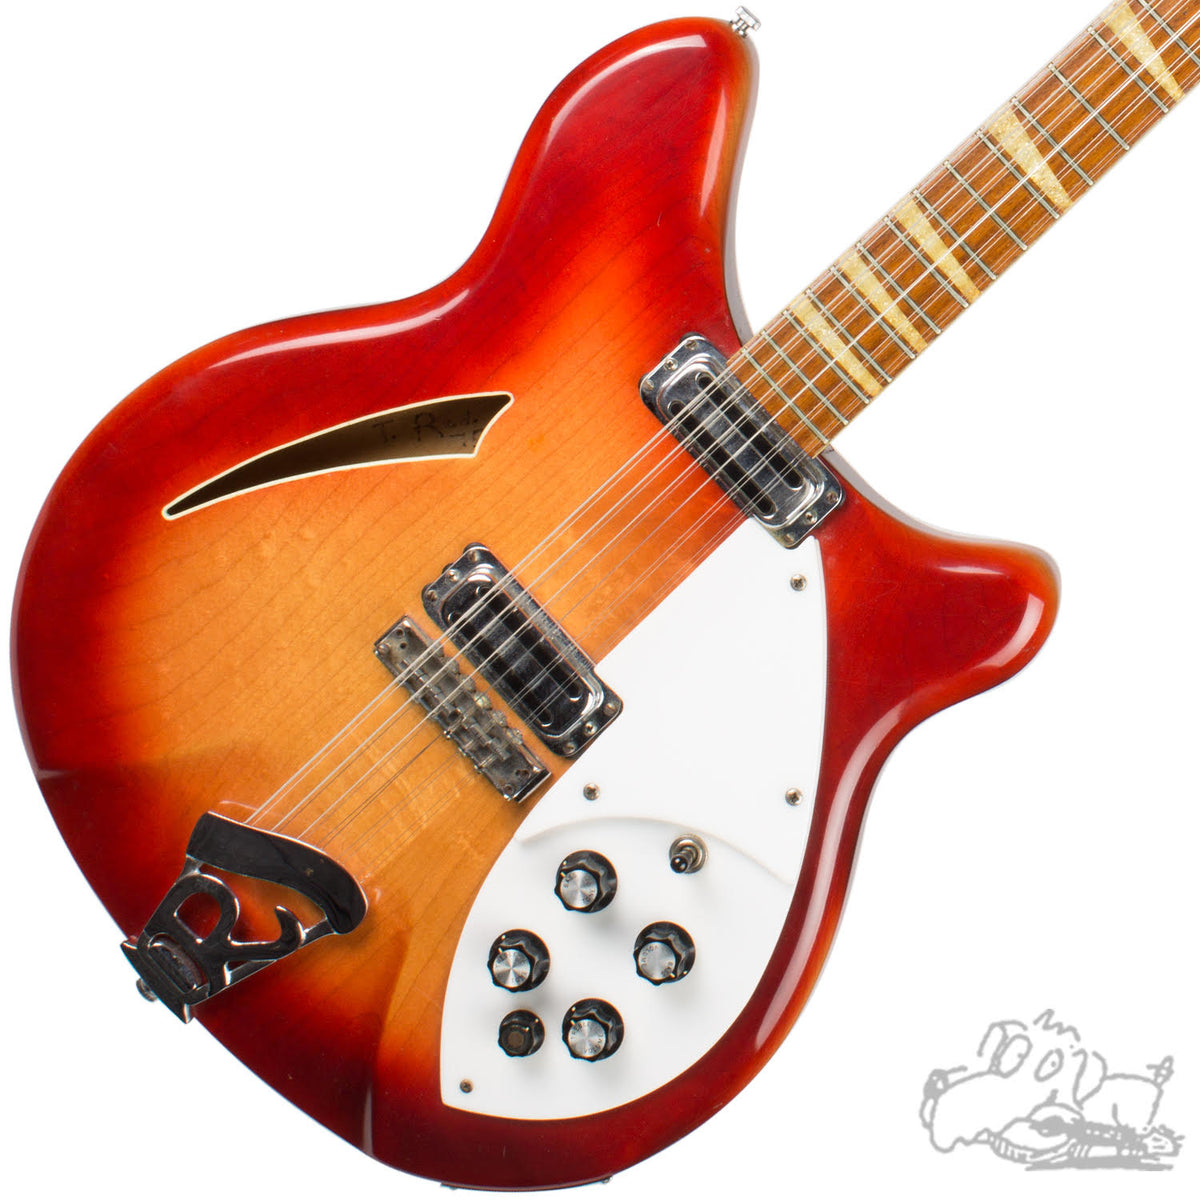 1966 Rickenbacker 360/12 Electric Guitar